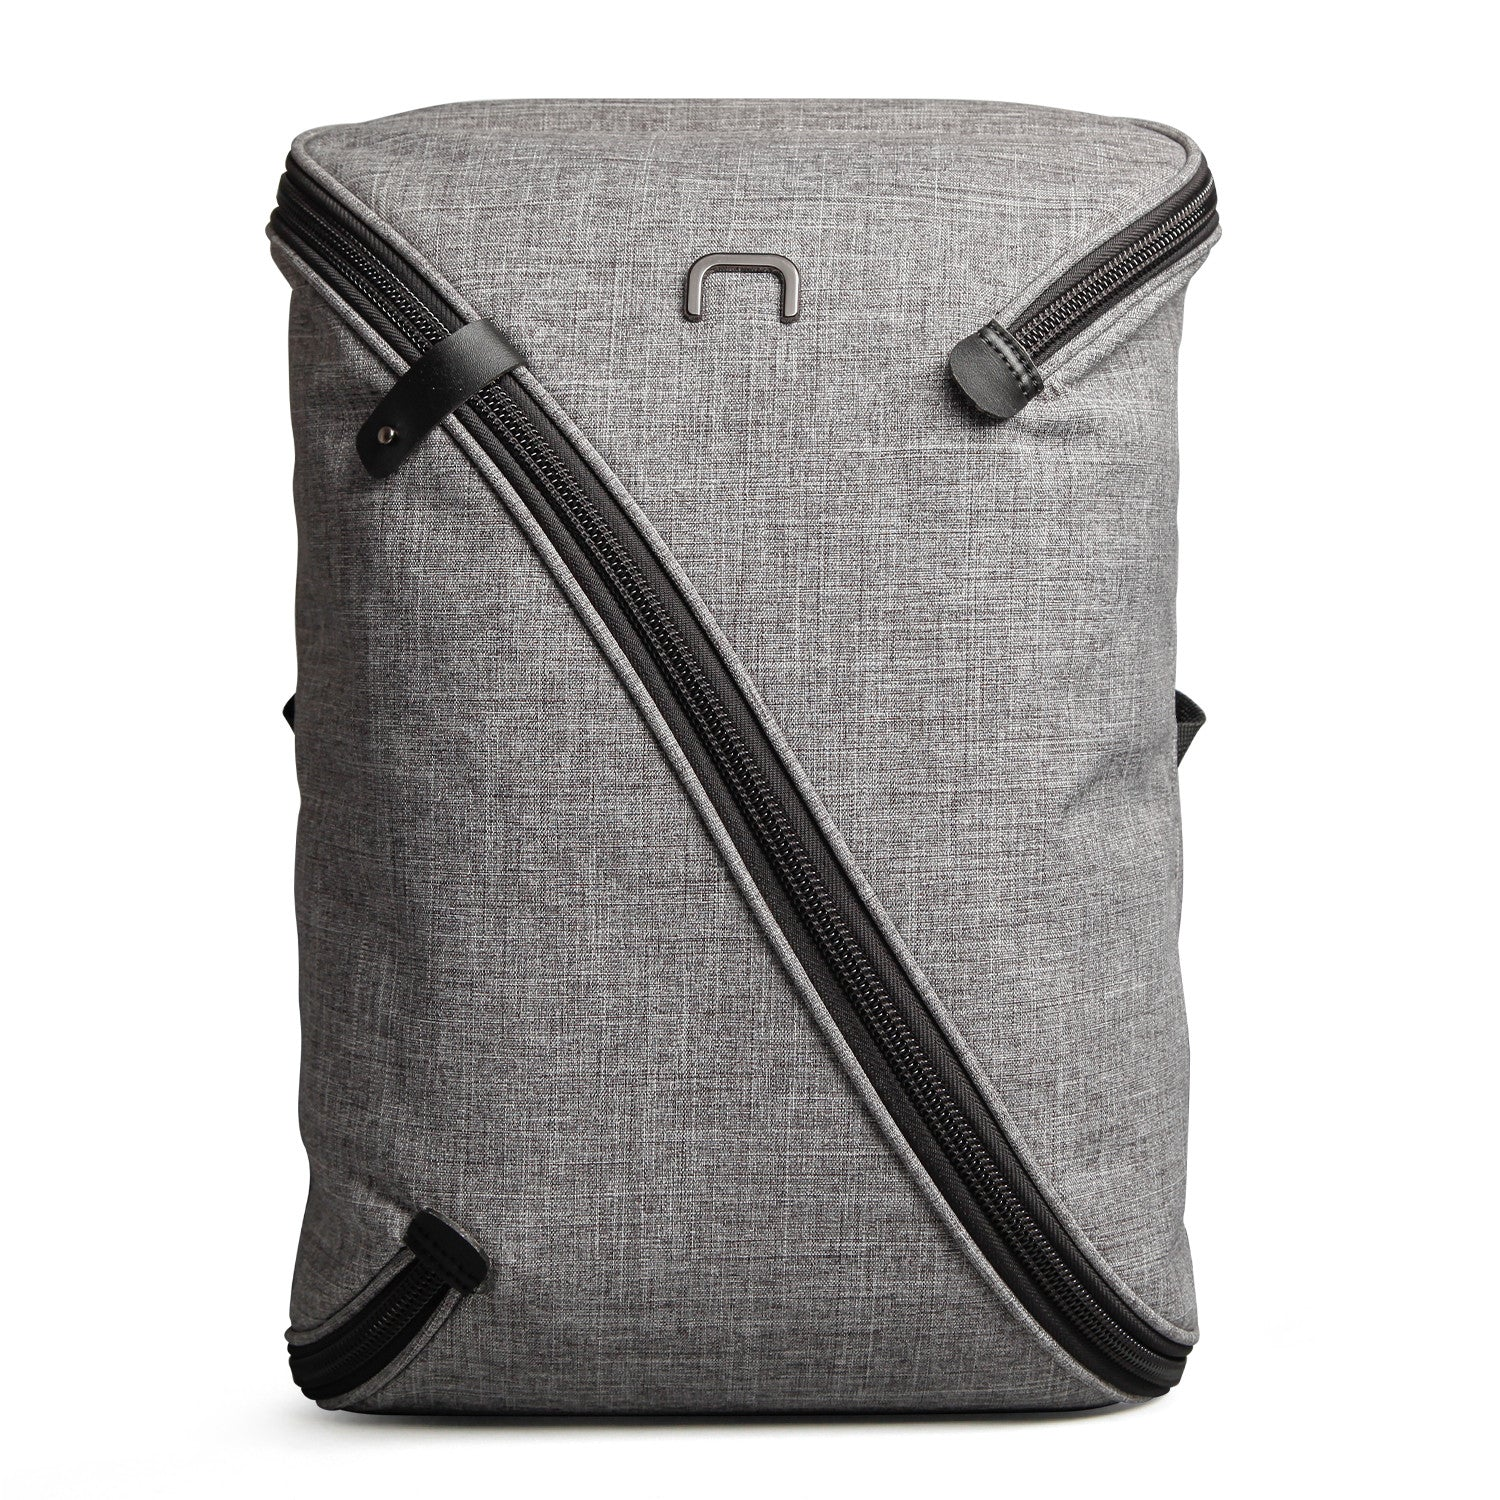 "13.3"" Laptop Backpack with USB charging Port by NIID UNO II"